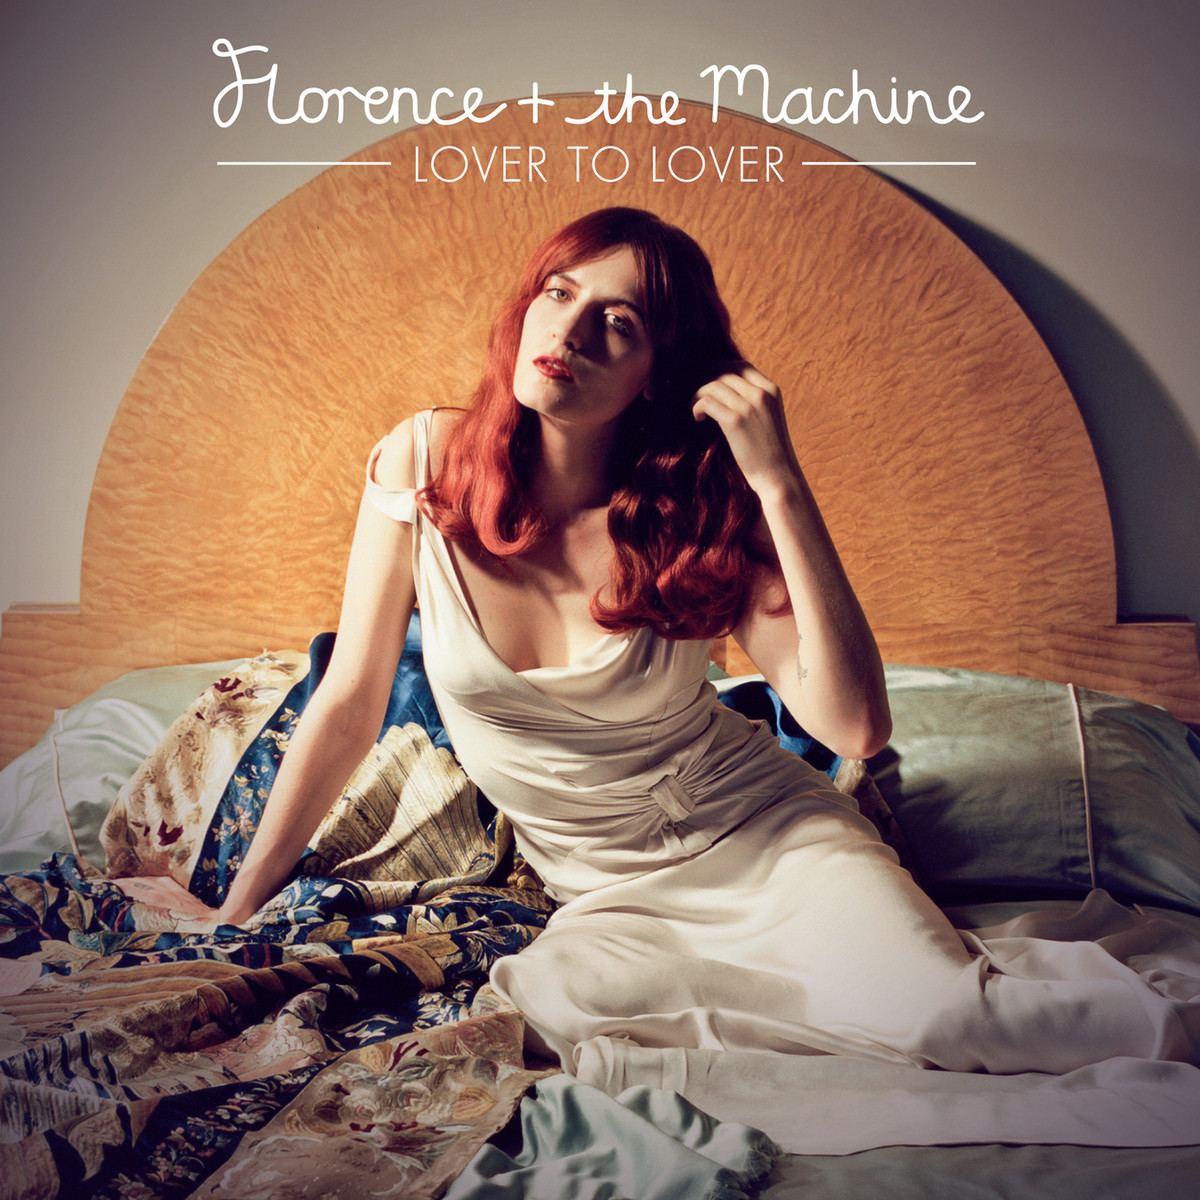 Lover to lover - #Florence + the #Machine #lovertolover